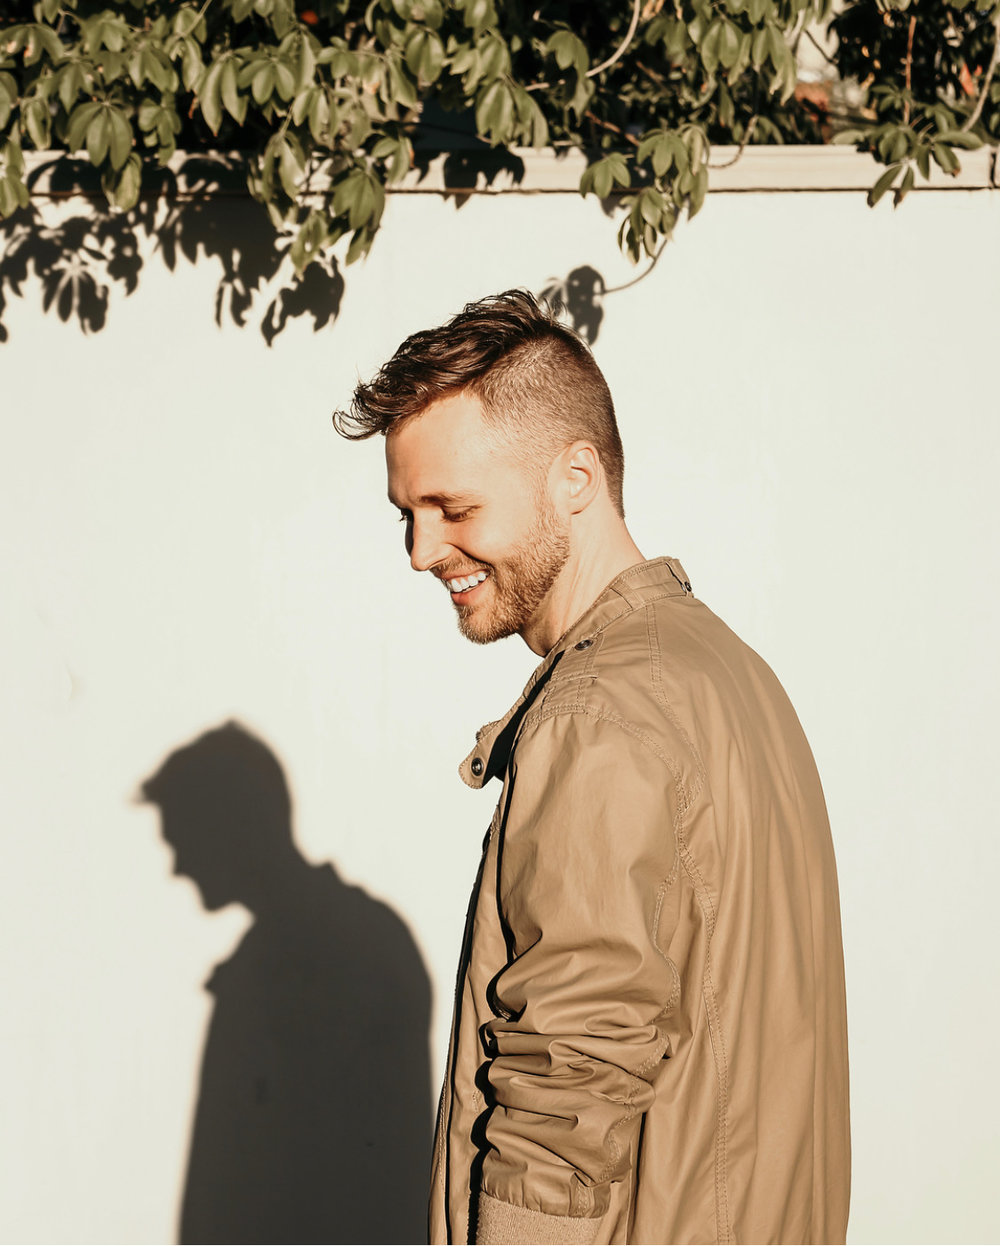 Graham Harper - Graham is the Los Angeles / Ventura Coordinator for WSN, an artist, songwriter, producer, and worship pastor of over 10 years. He and his wife, Kelly, live in Los Angeles, CA and are expecting their first child- coming June!